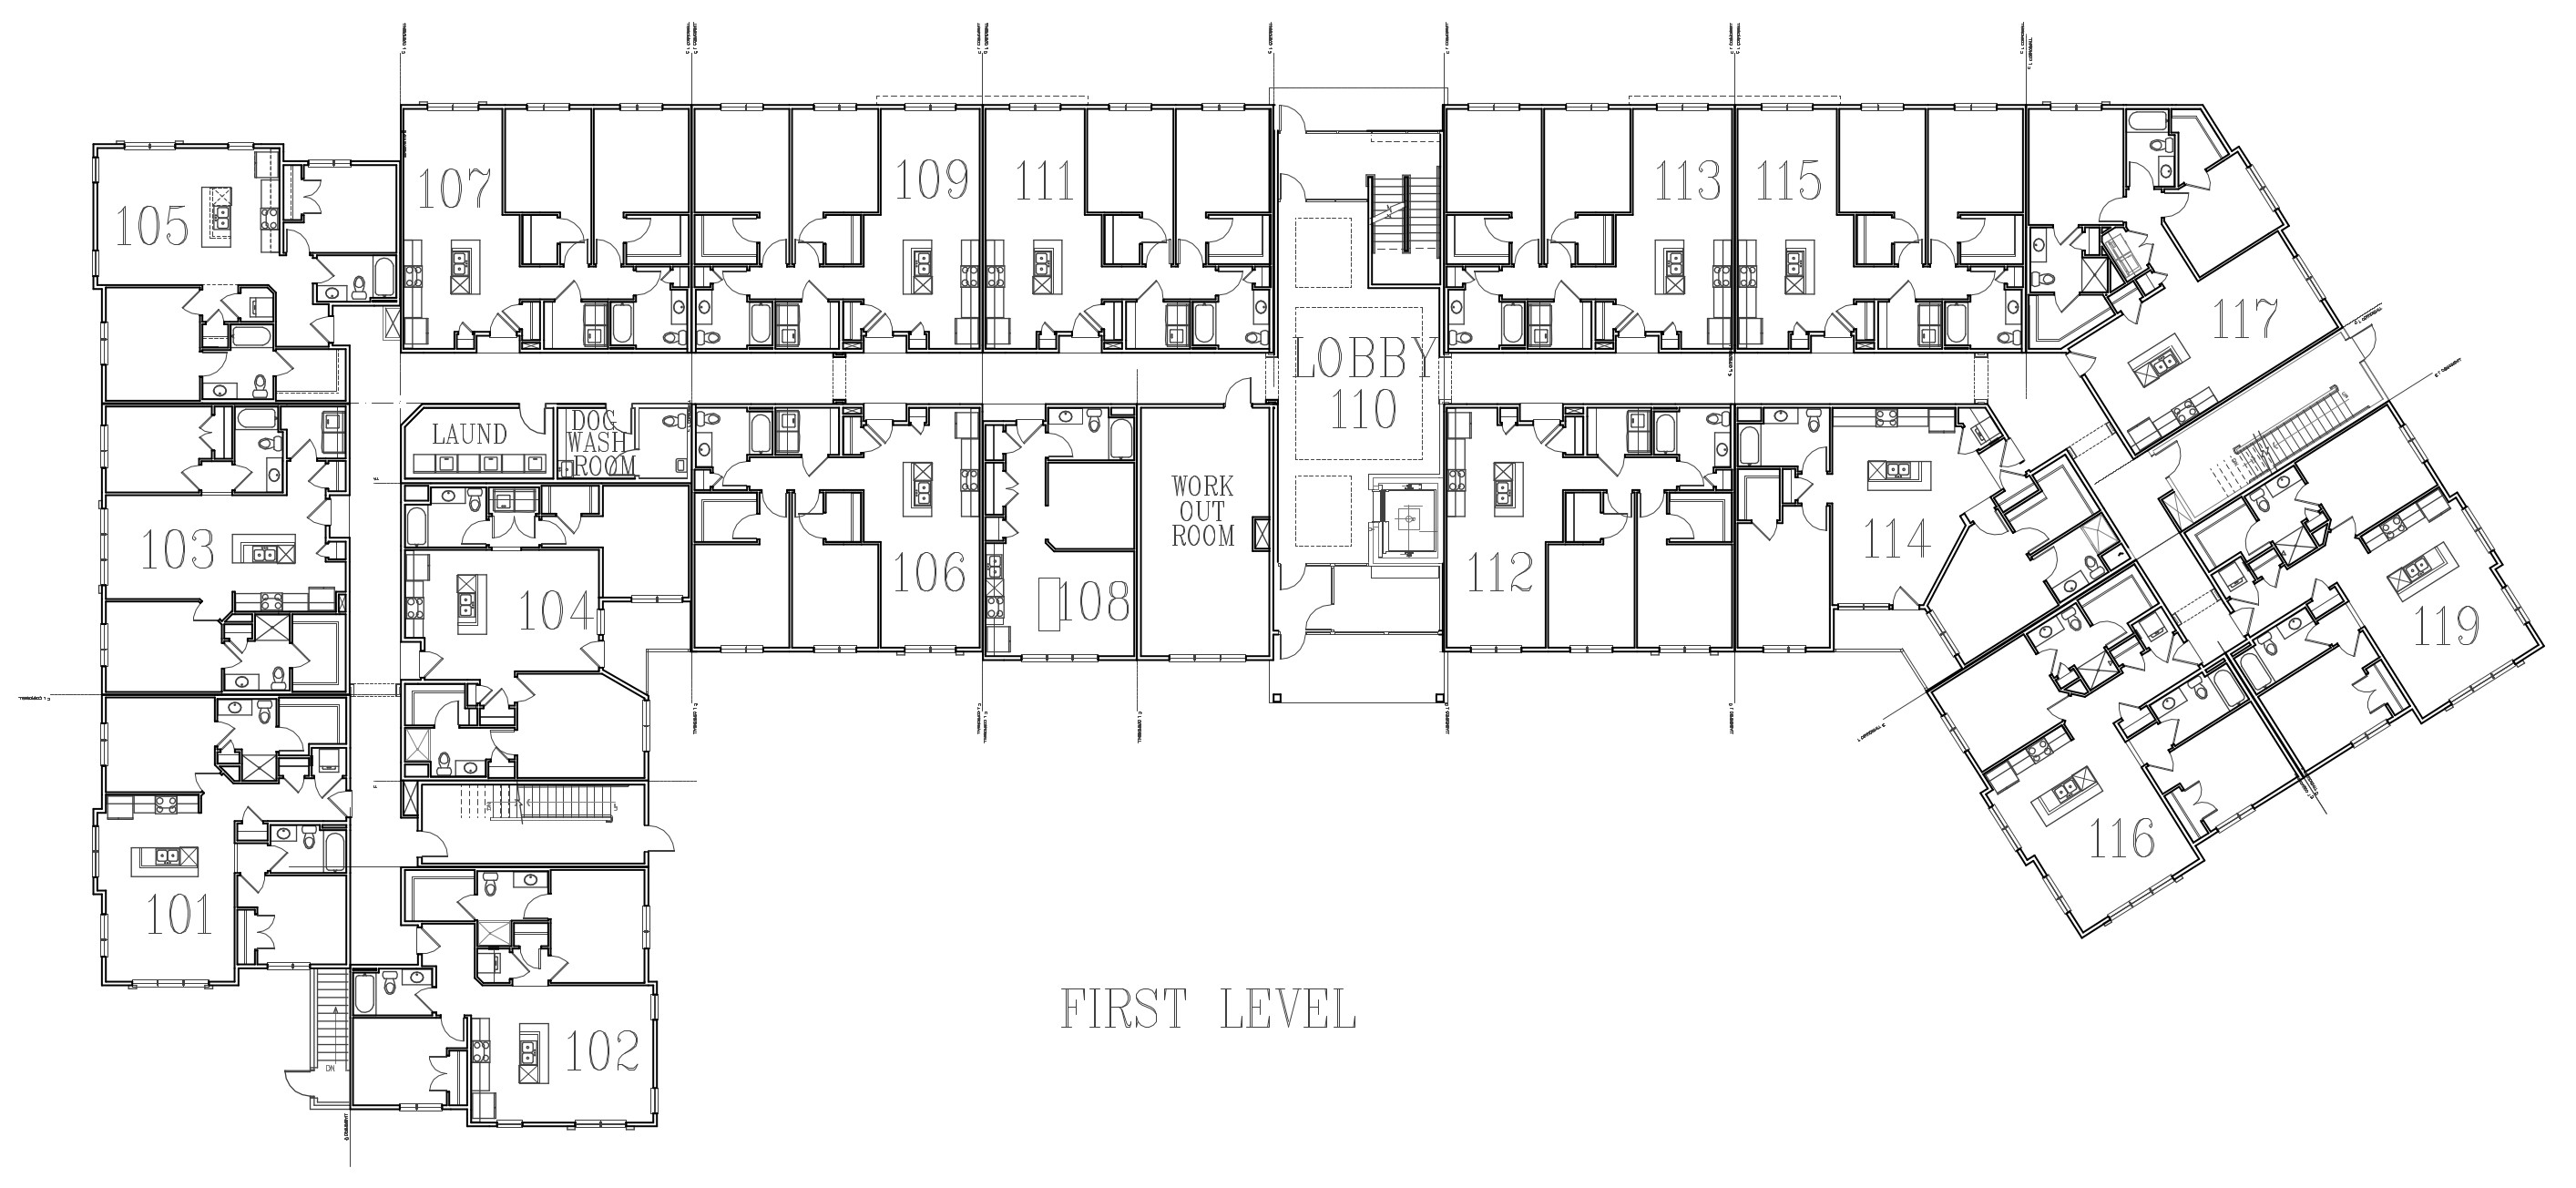 Image of building layout for first floor.